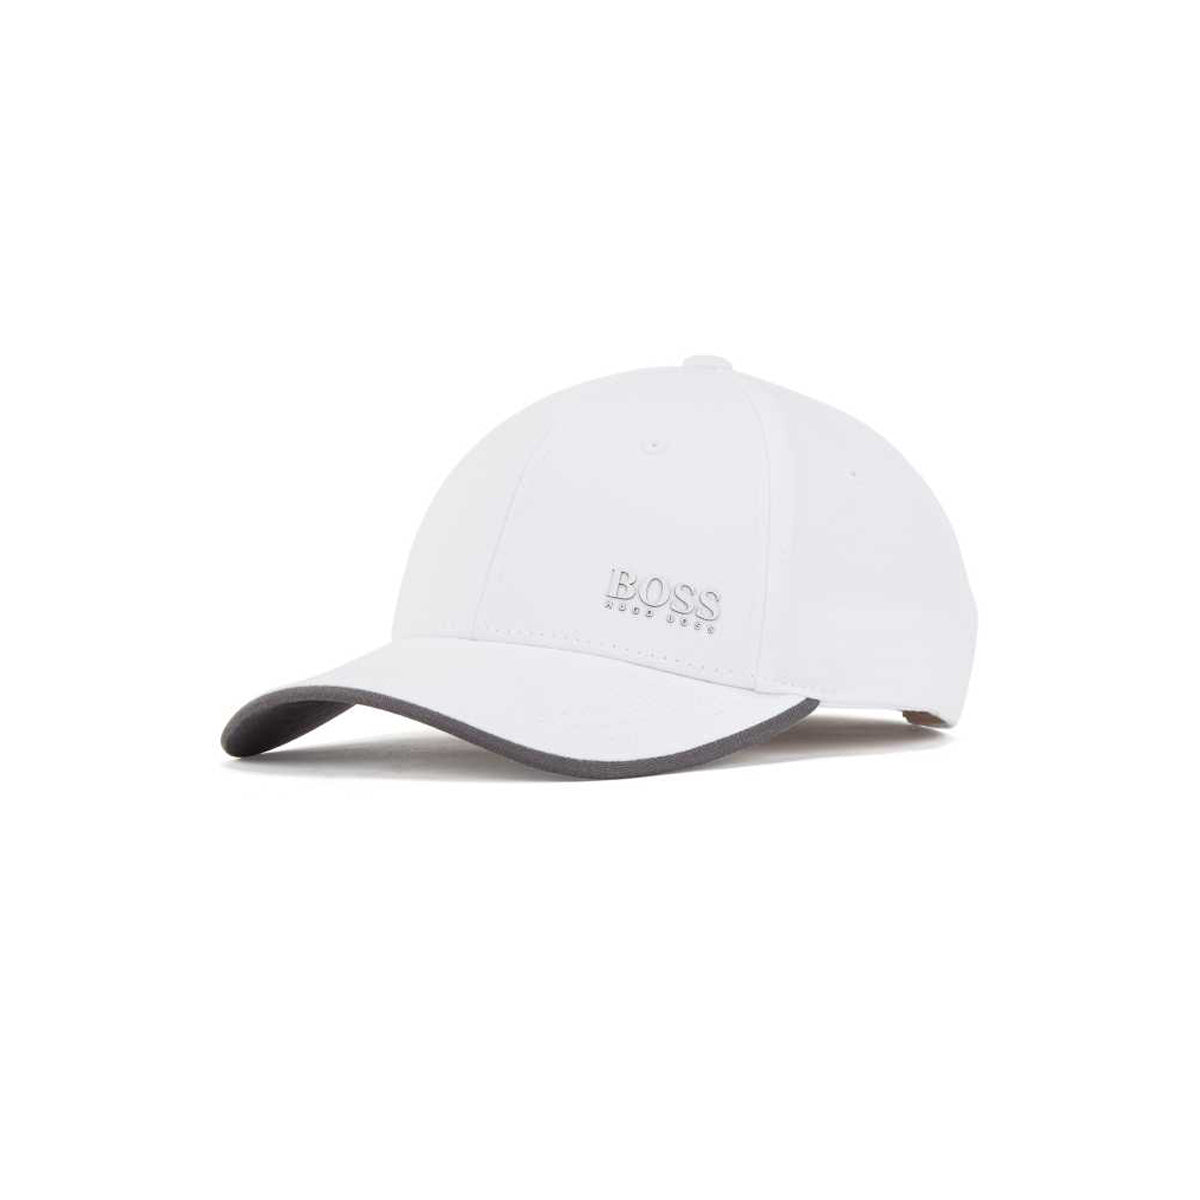 HUGO BOSS CAP-X MEN'S CAP 50430053-100